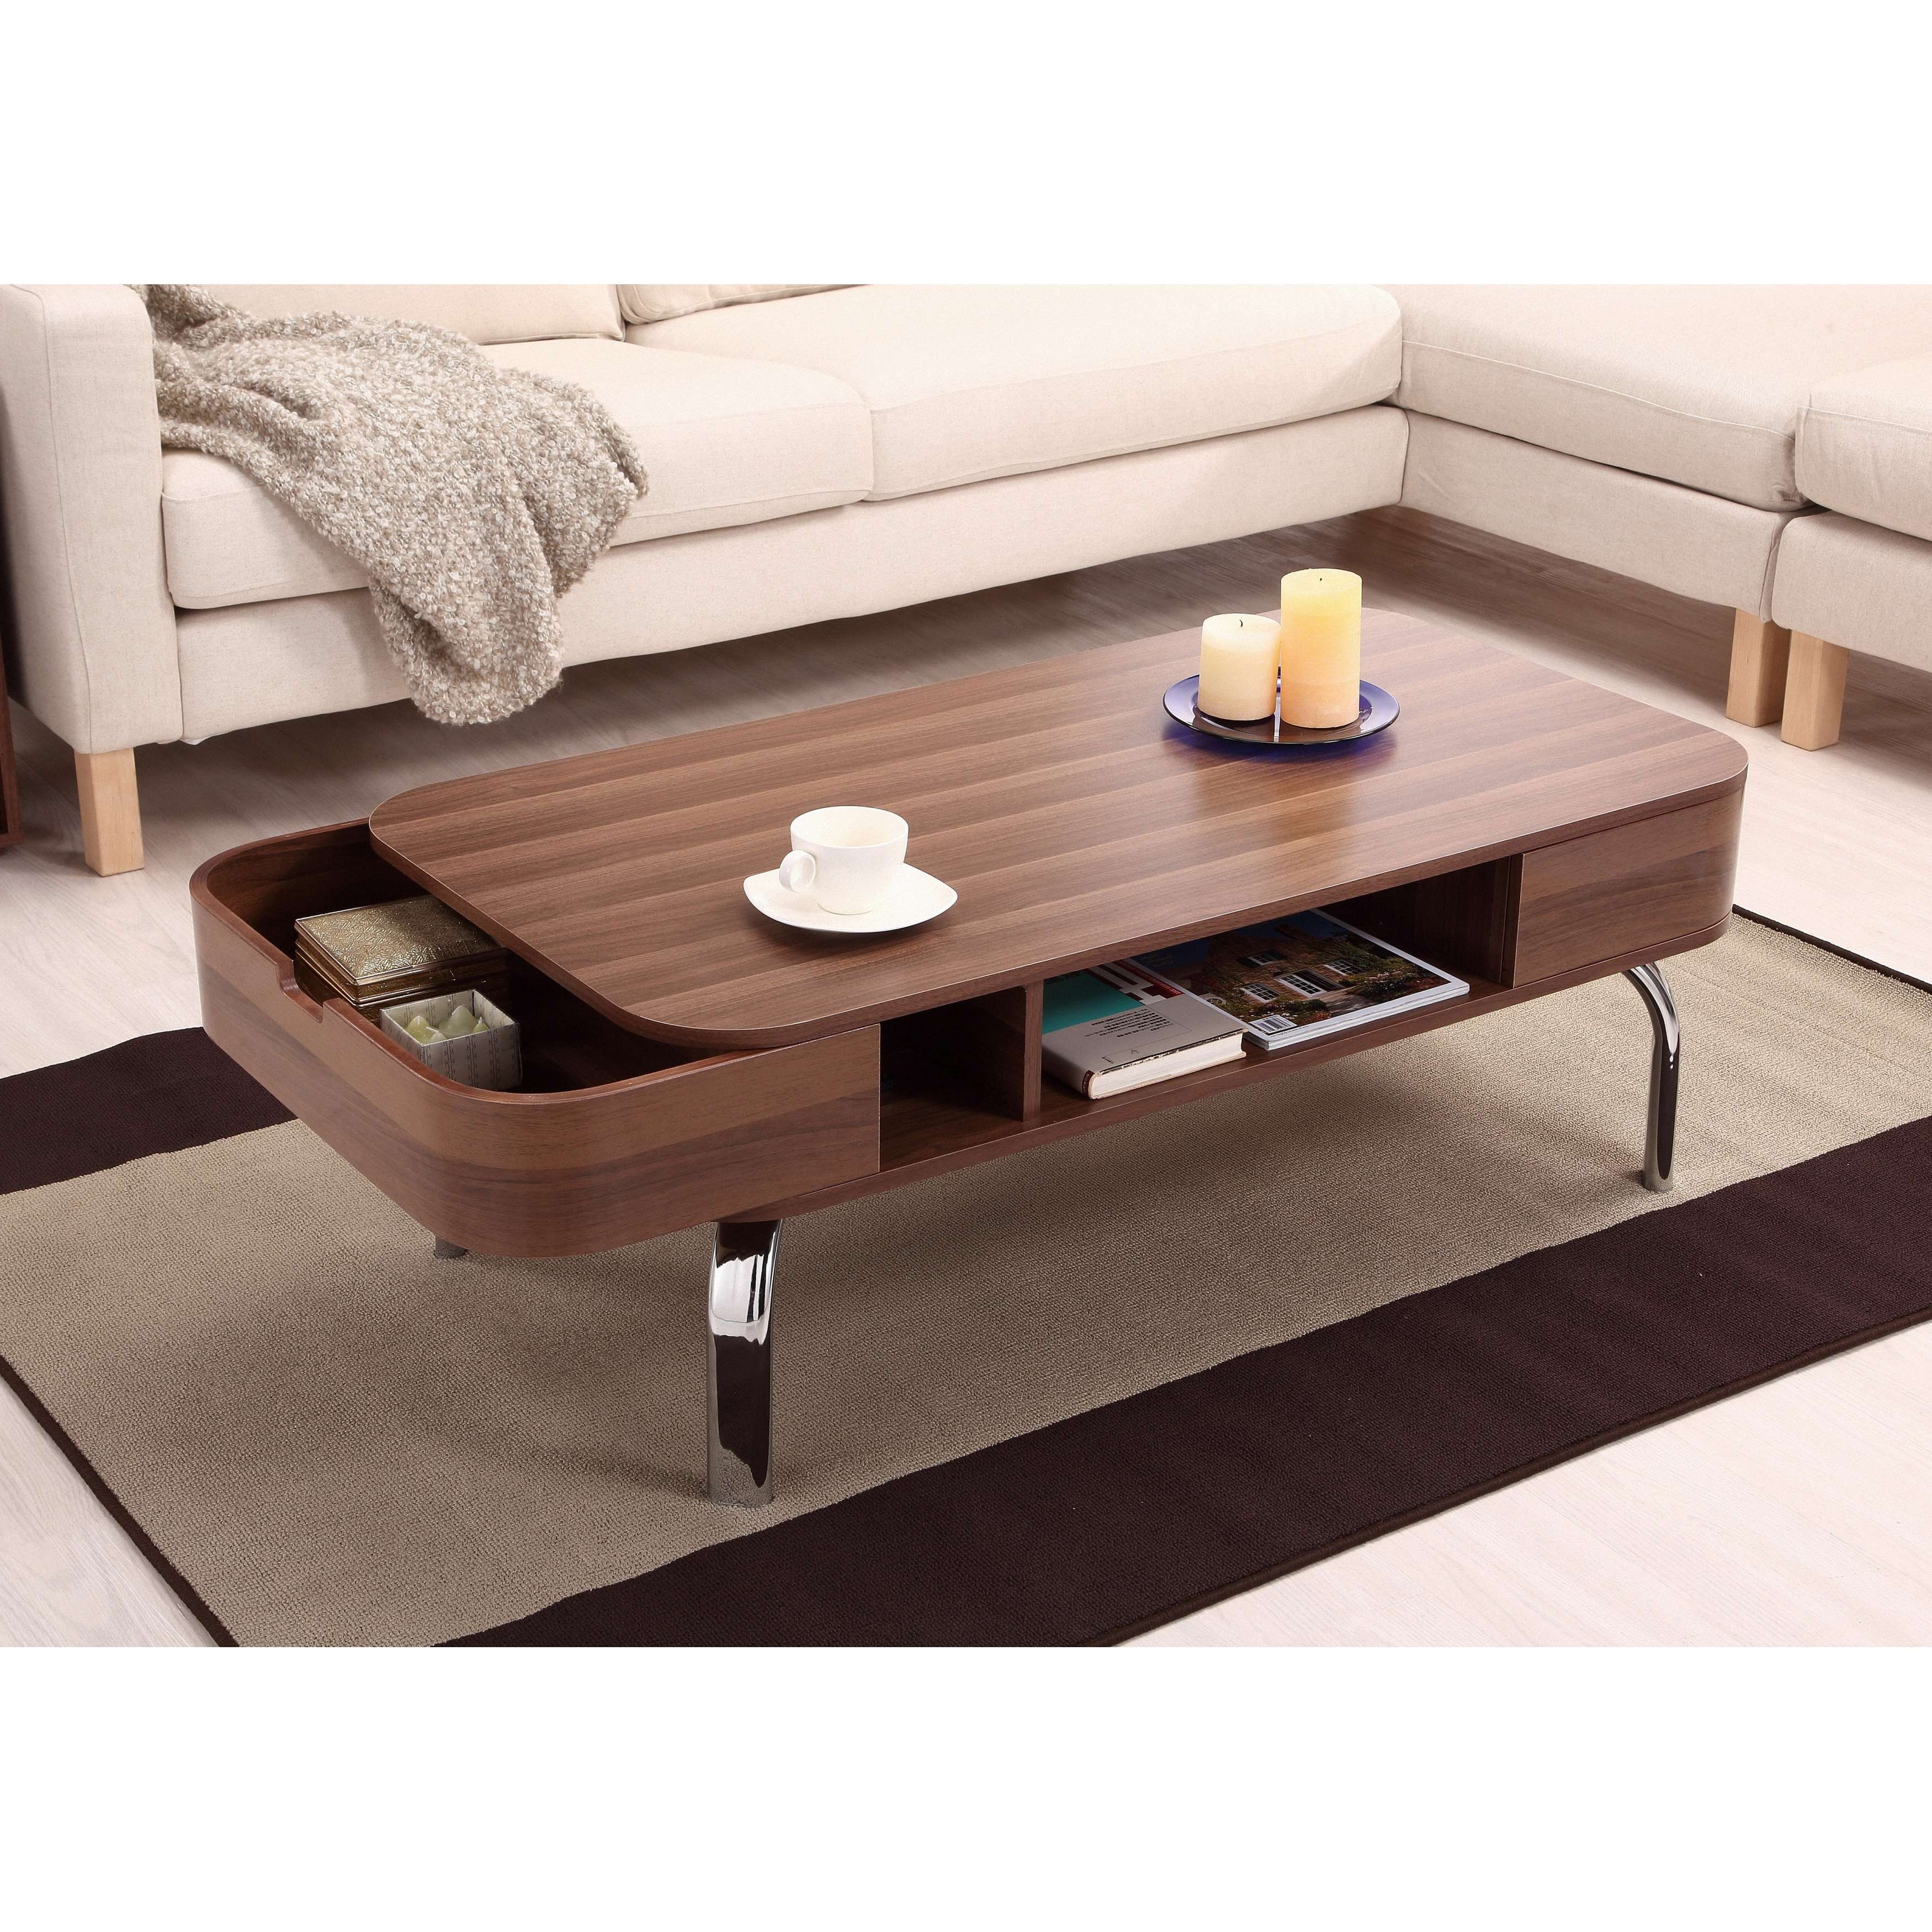 Coffee Table : Inch Square Coffee Table Huge Coffee Table Large With Regard To 2017 Huge Coffee Tables (View 19 of 20)